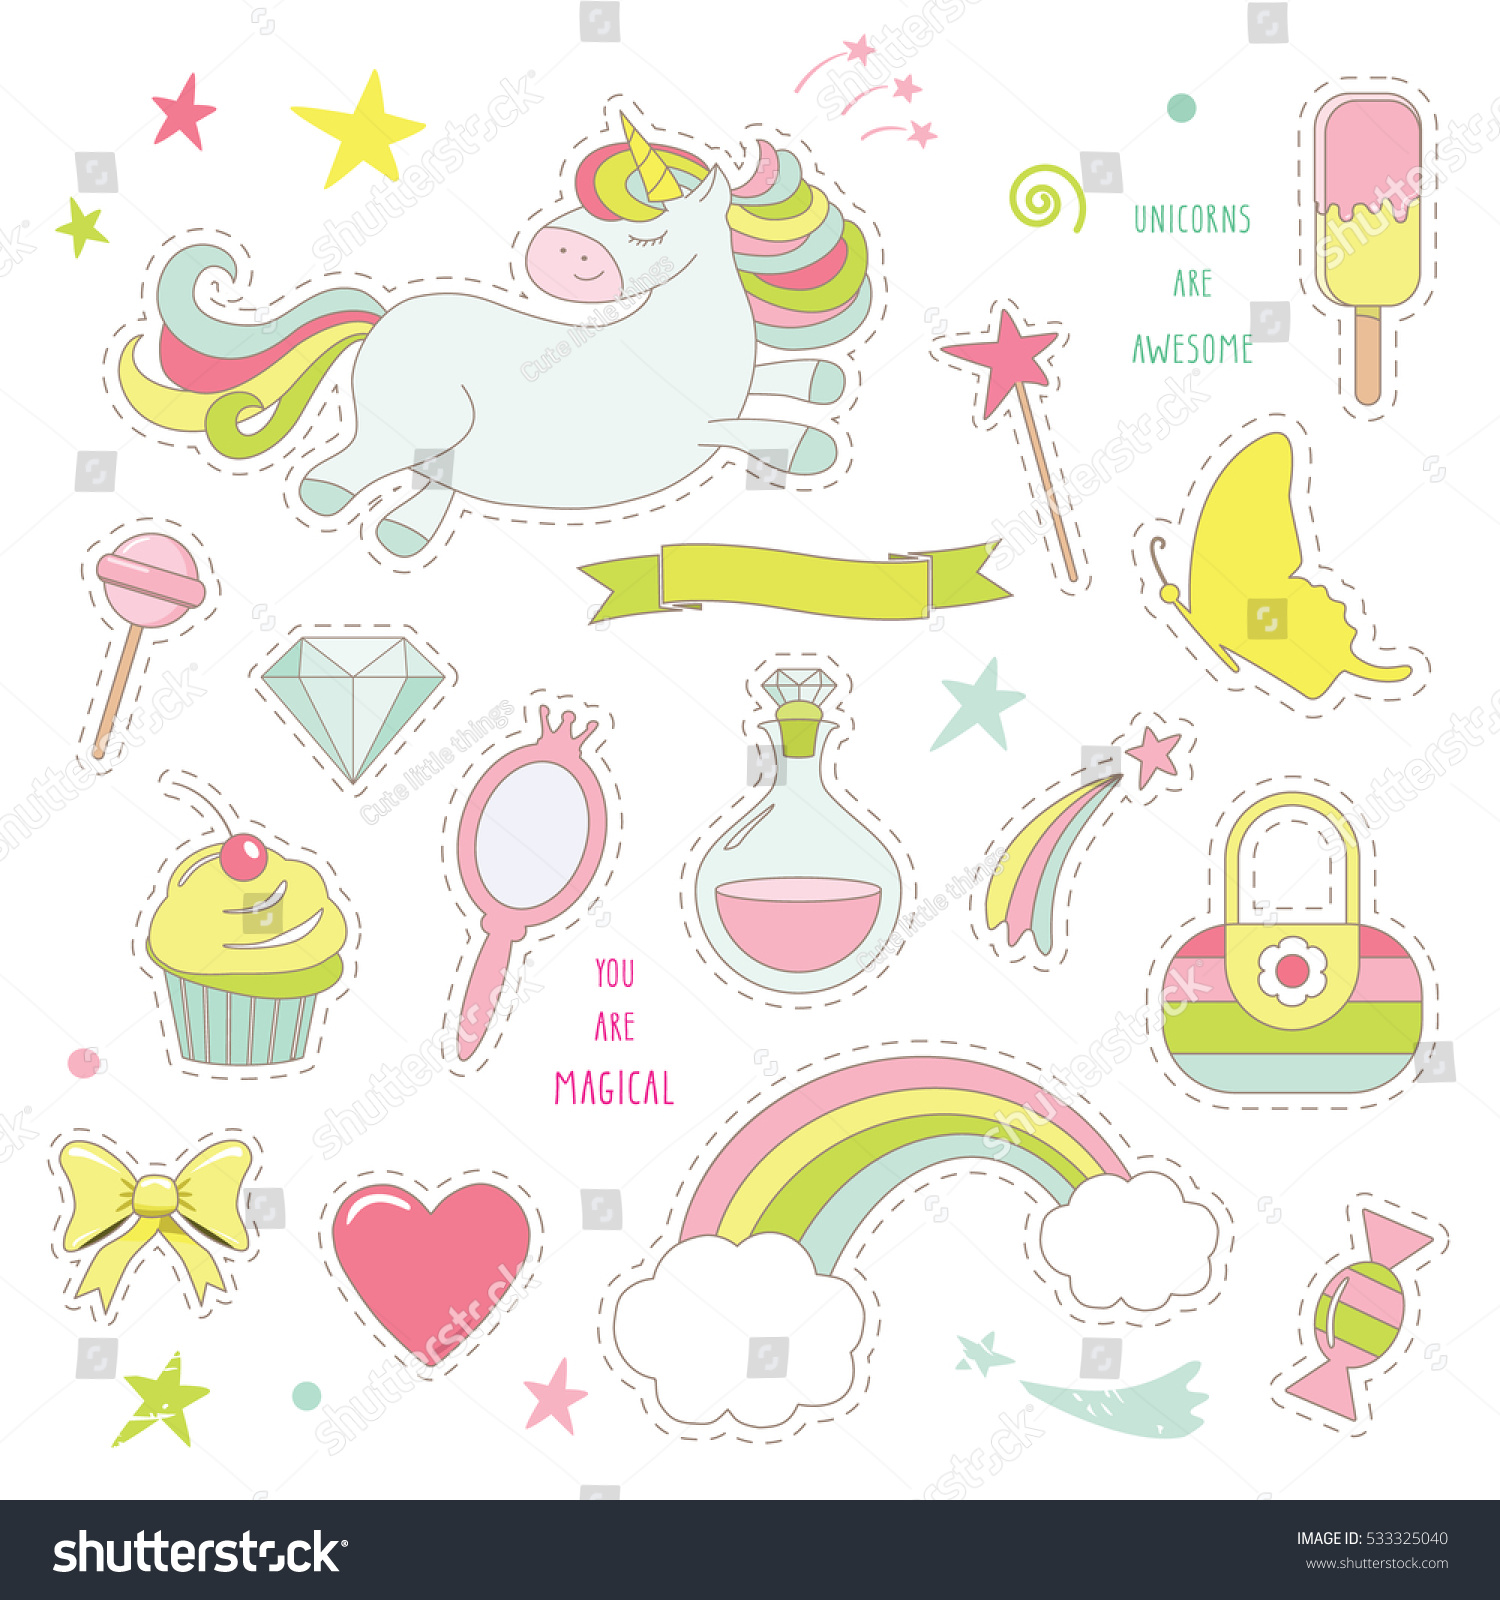 sticker design for birthday ; stock-vector-unicorn-magic-set-for-kids-cute-stickers-collection-for-birthday-or-scrapbook-design-isolated-on-533325040